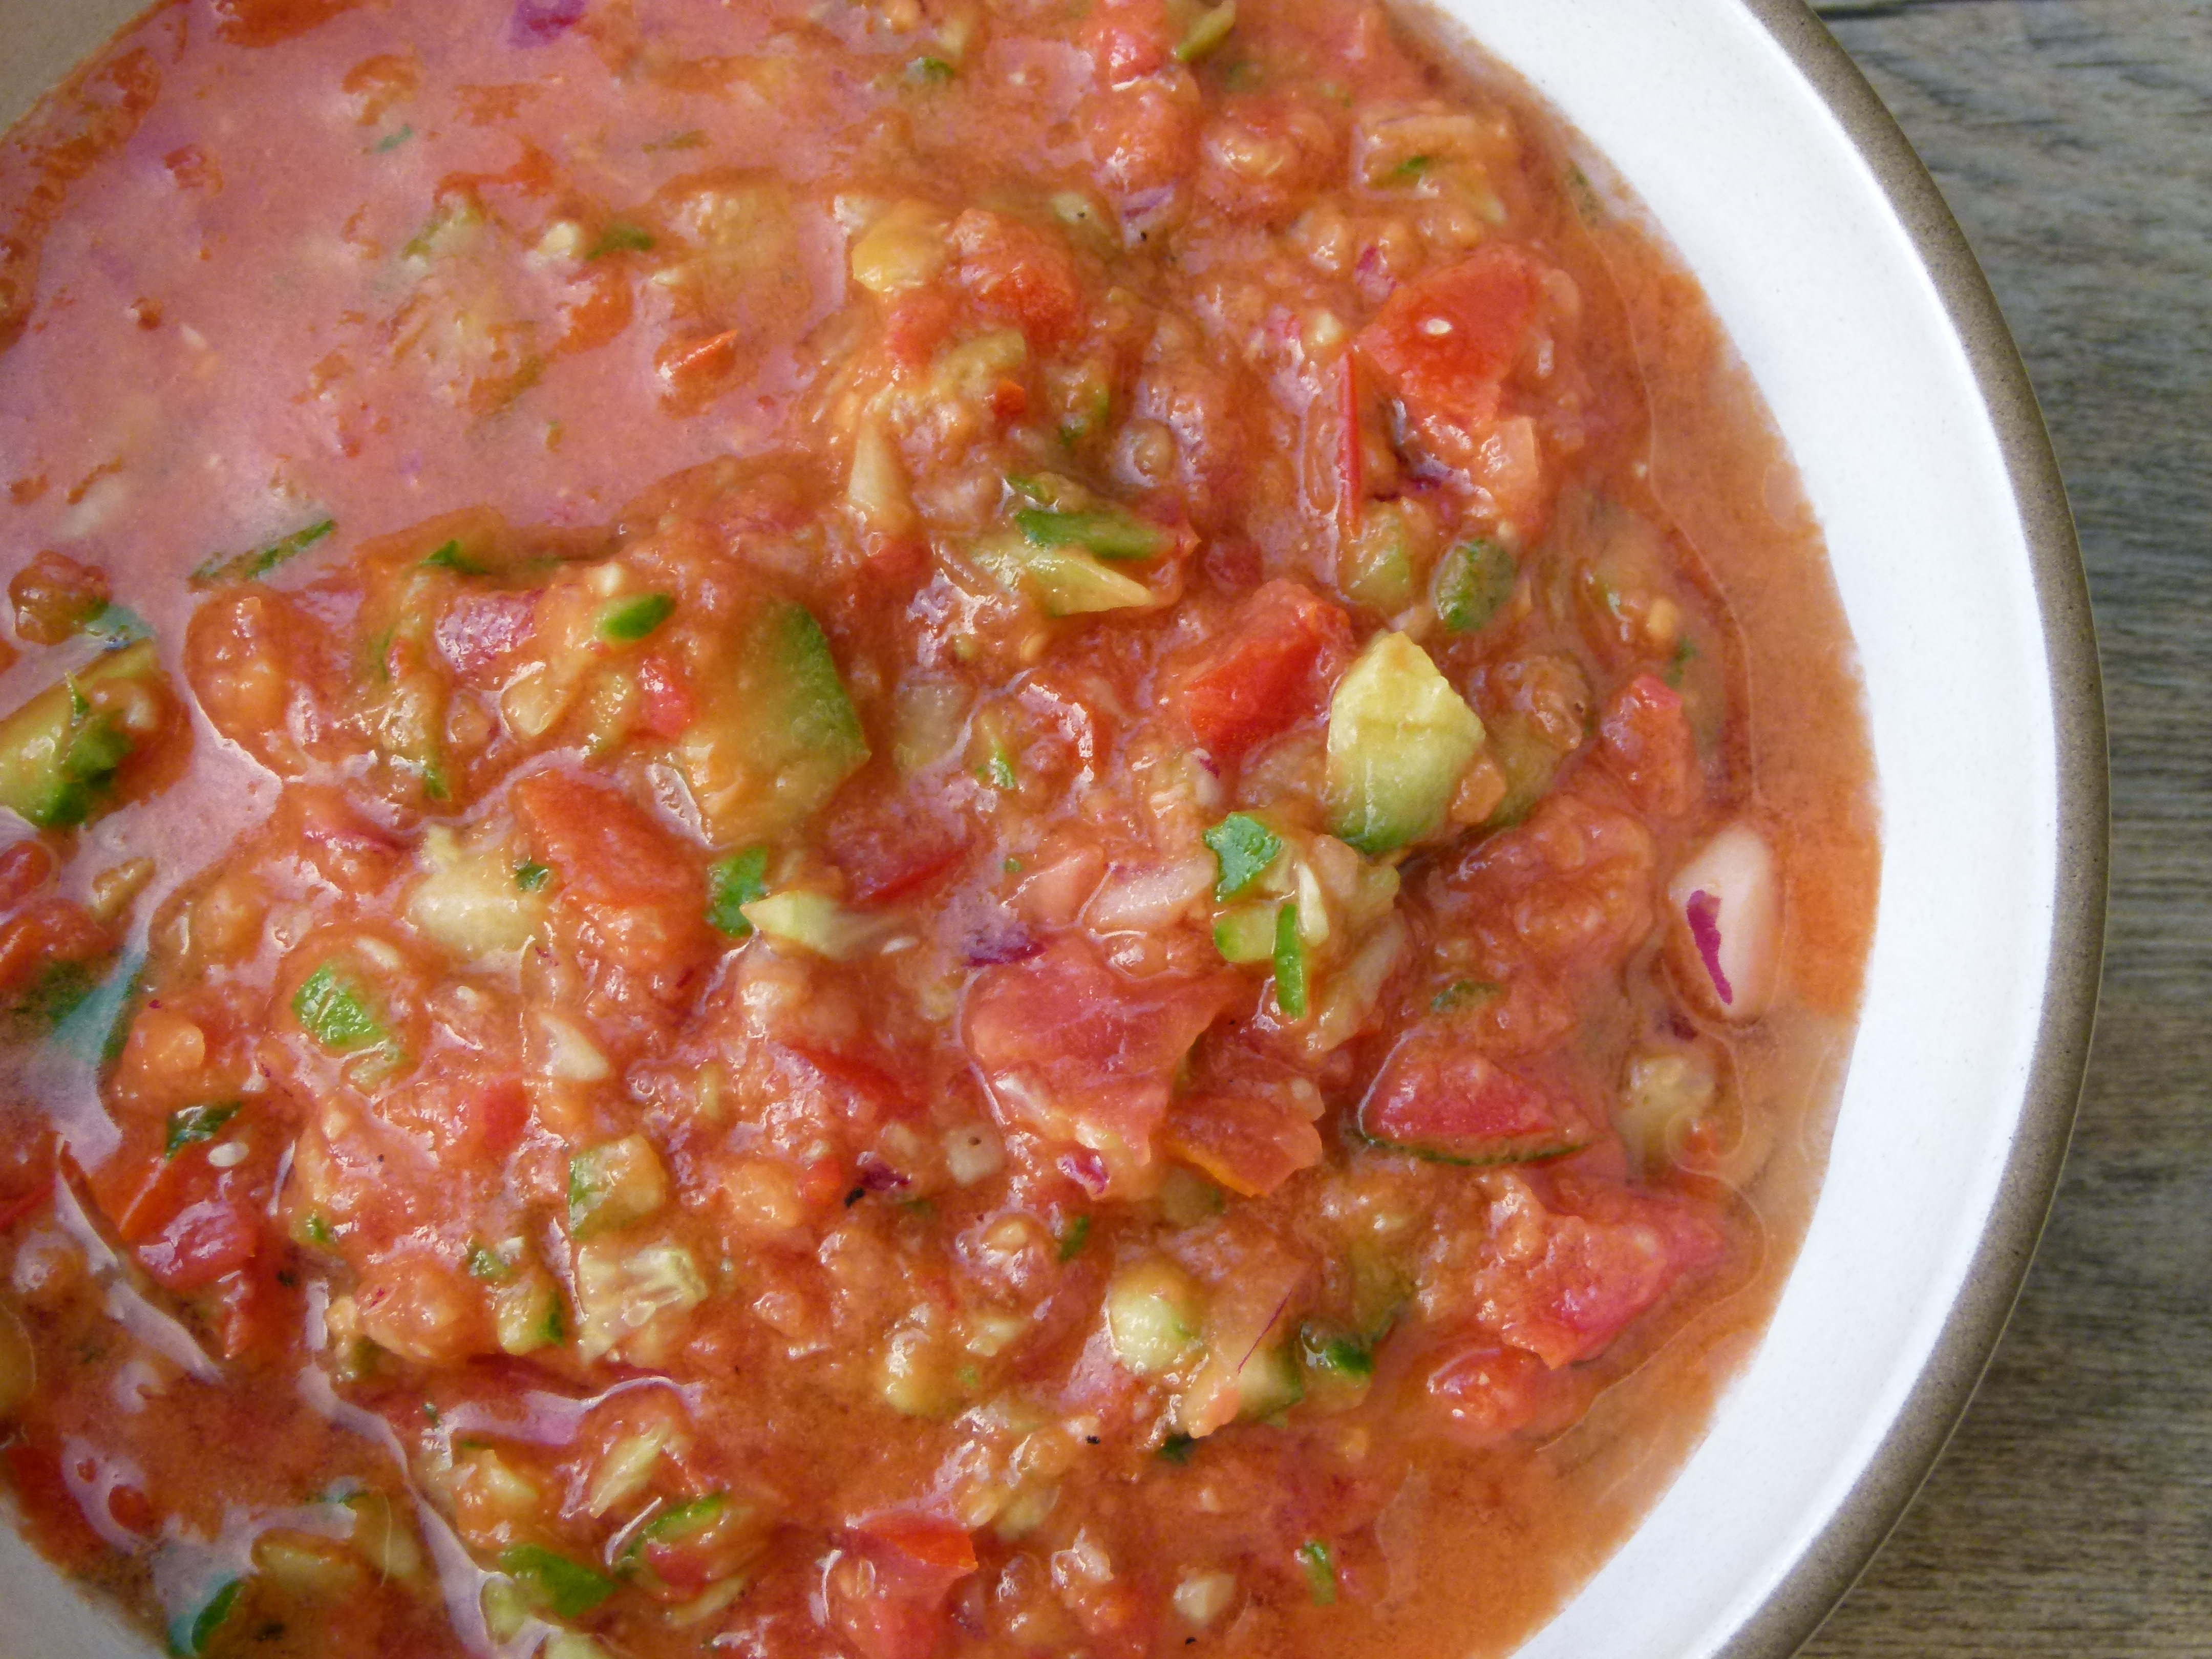 Summery Gazpacho Clean Eating Recipe advise